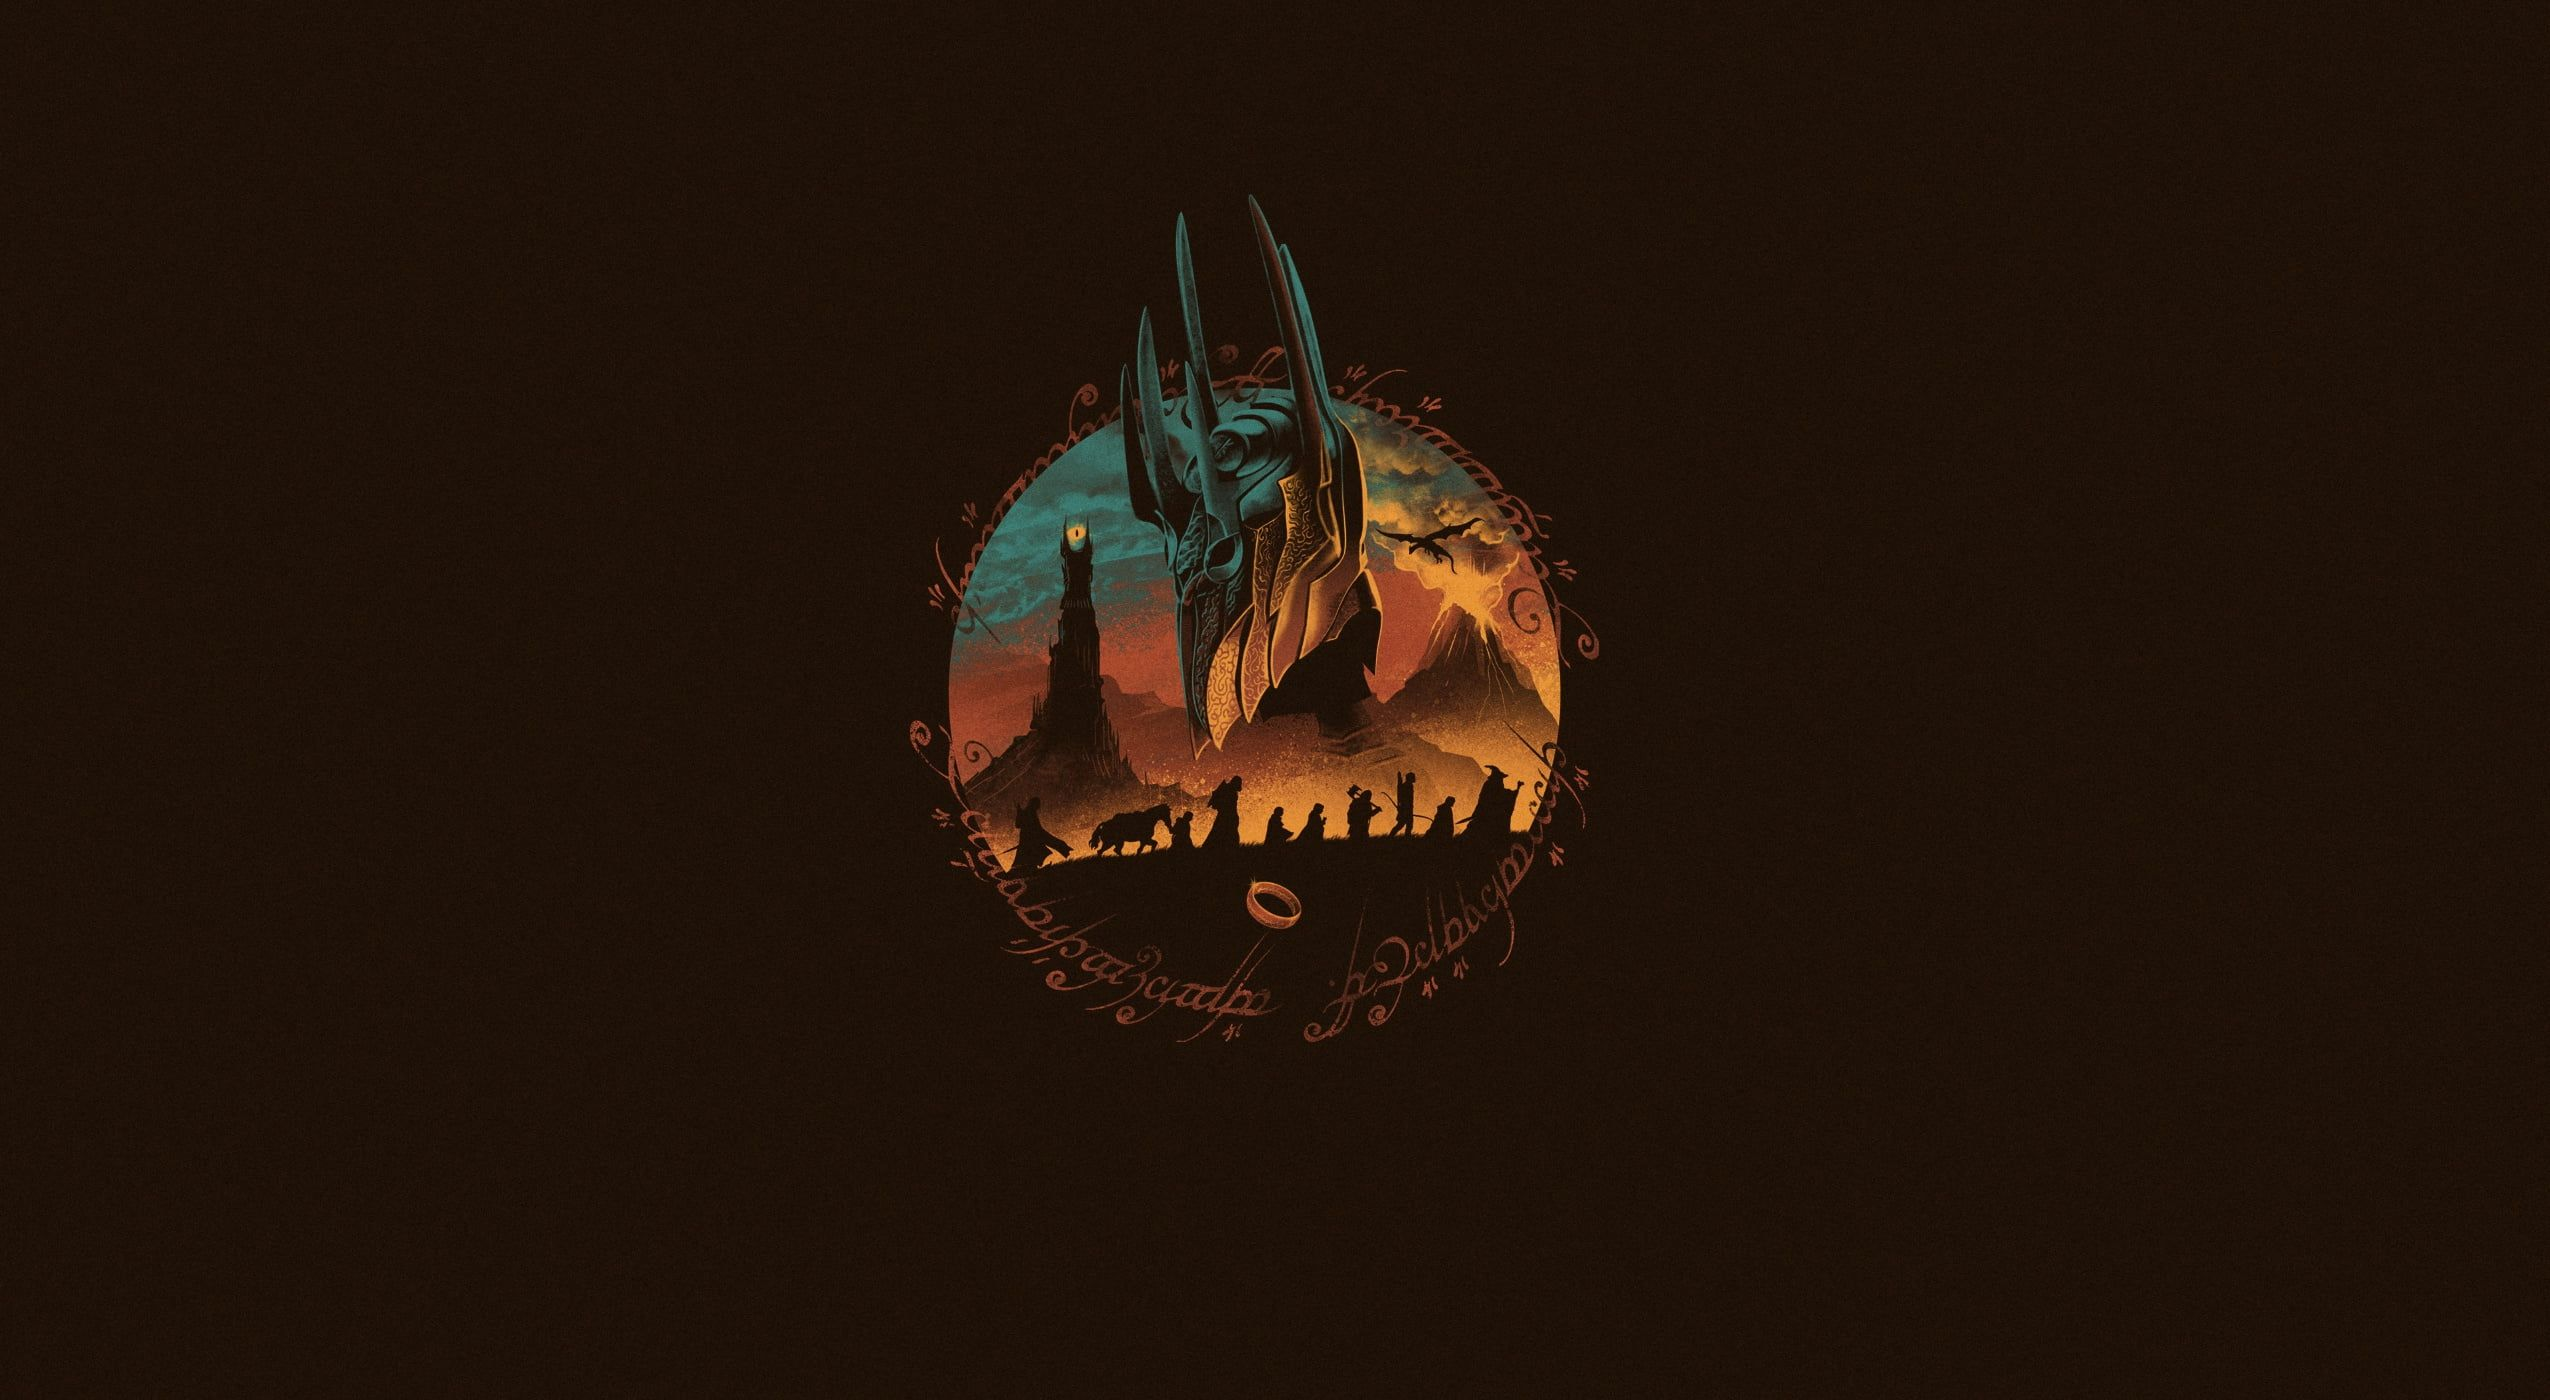 Minimalism Figure The Lord Of The Rings Art The Lord Of The Rings Sauron By Vincenttrinidad Vincenttrinidad Mid Lord Of The Rings Imac Wallpaper Wallpaper